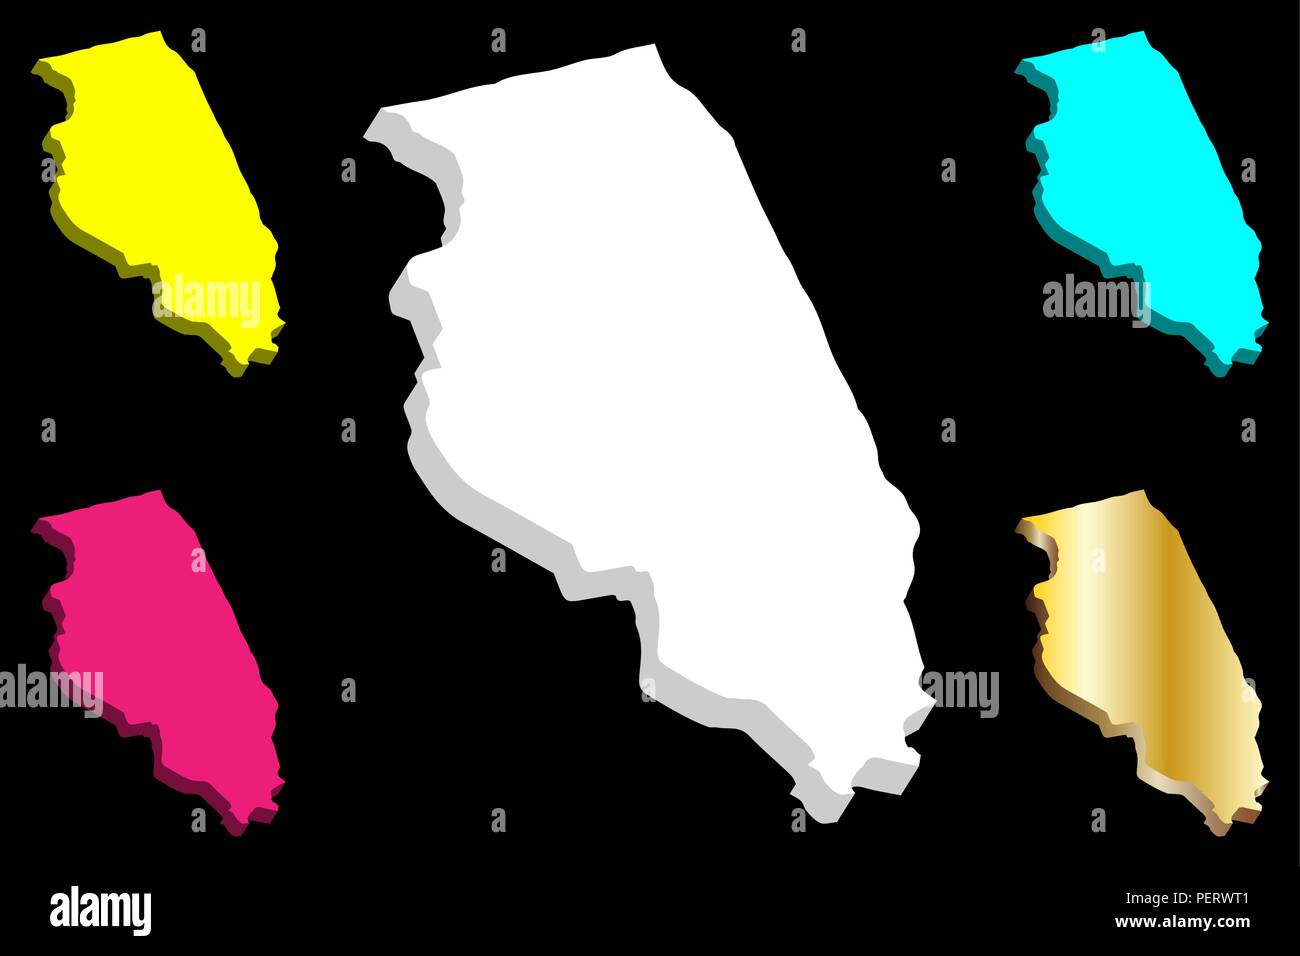 3D map of Illinois (United States of America) - white, yellow, purple, blue and gold - vector illustration - Stock Vector